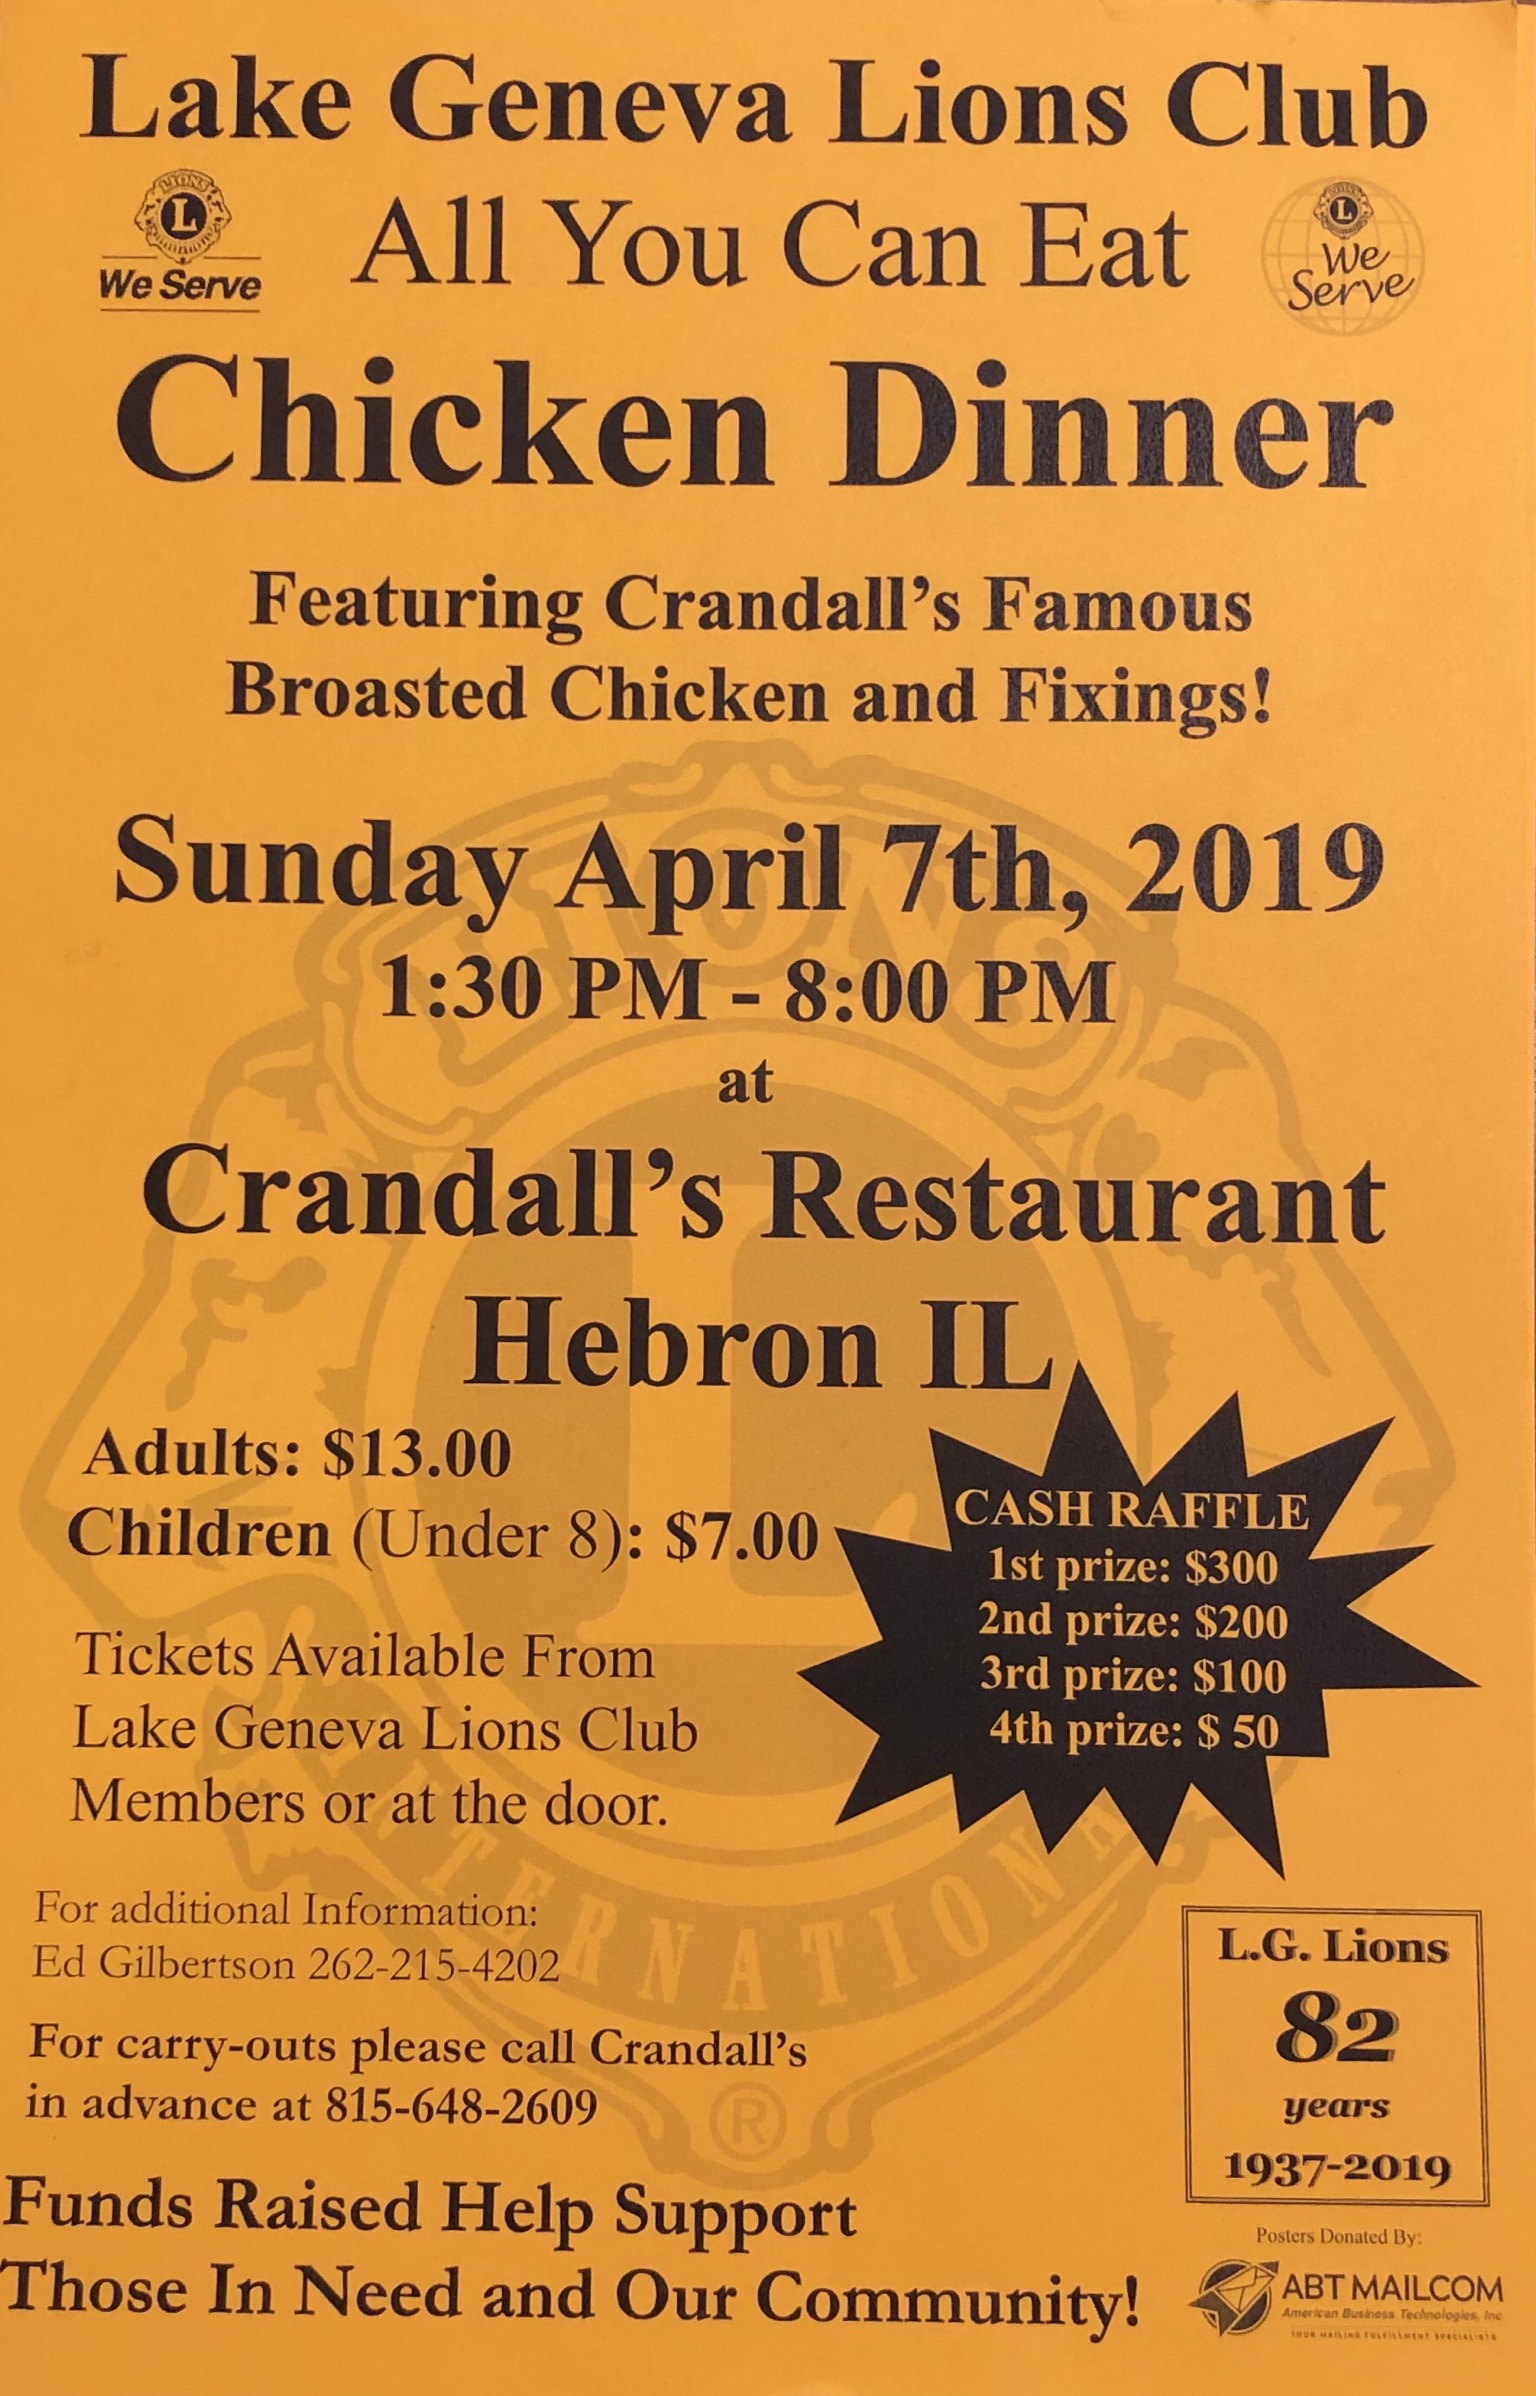 Lake Geneva Lions Club Chicken Dinner